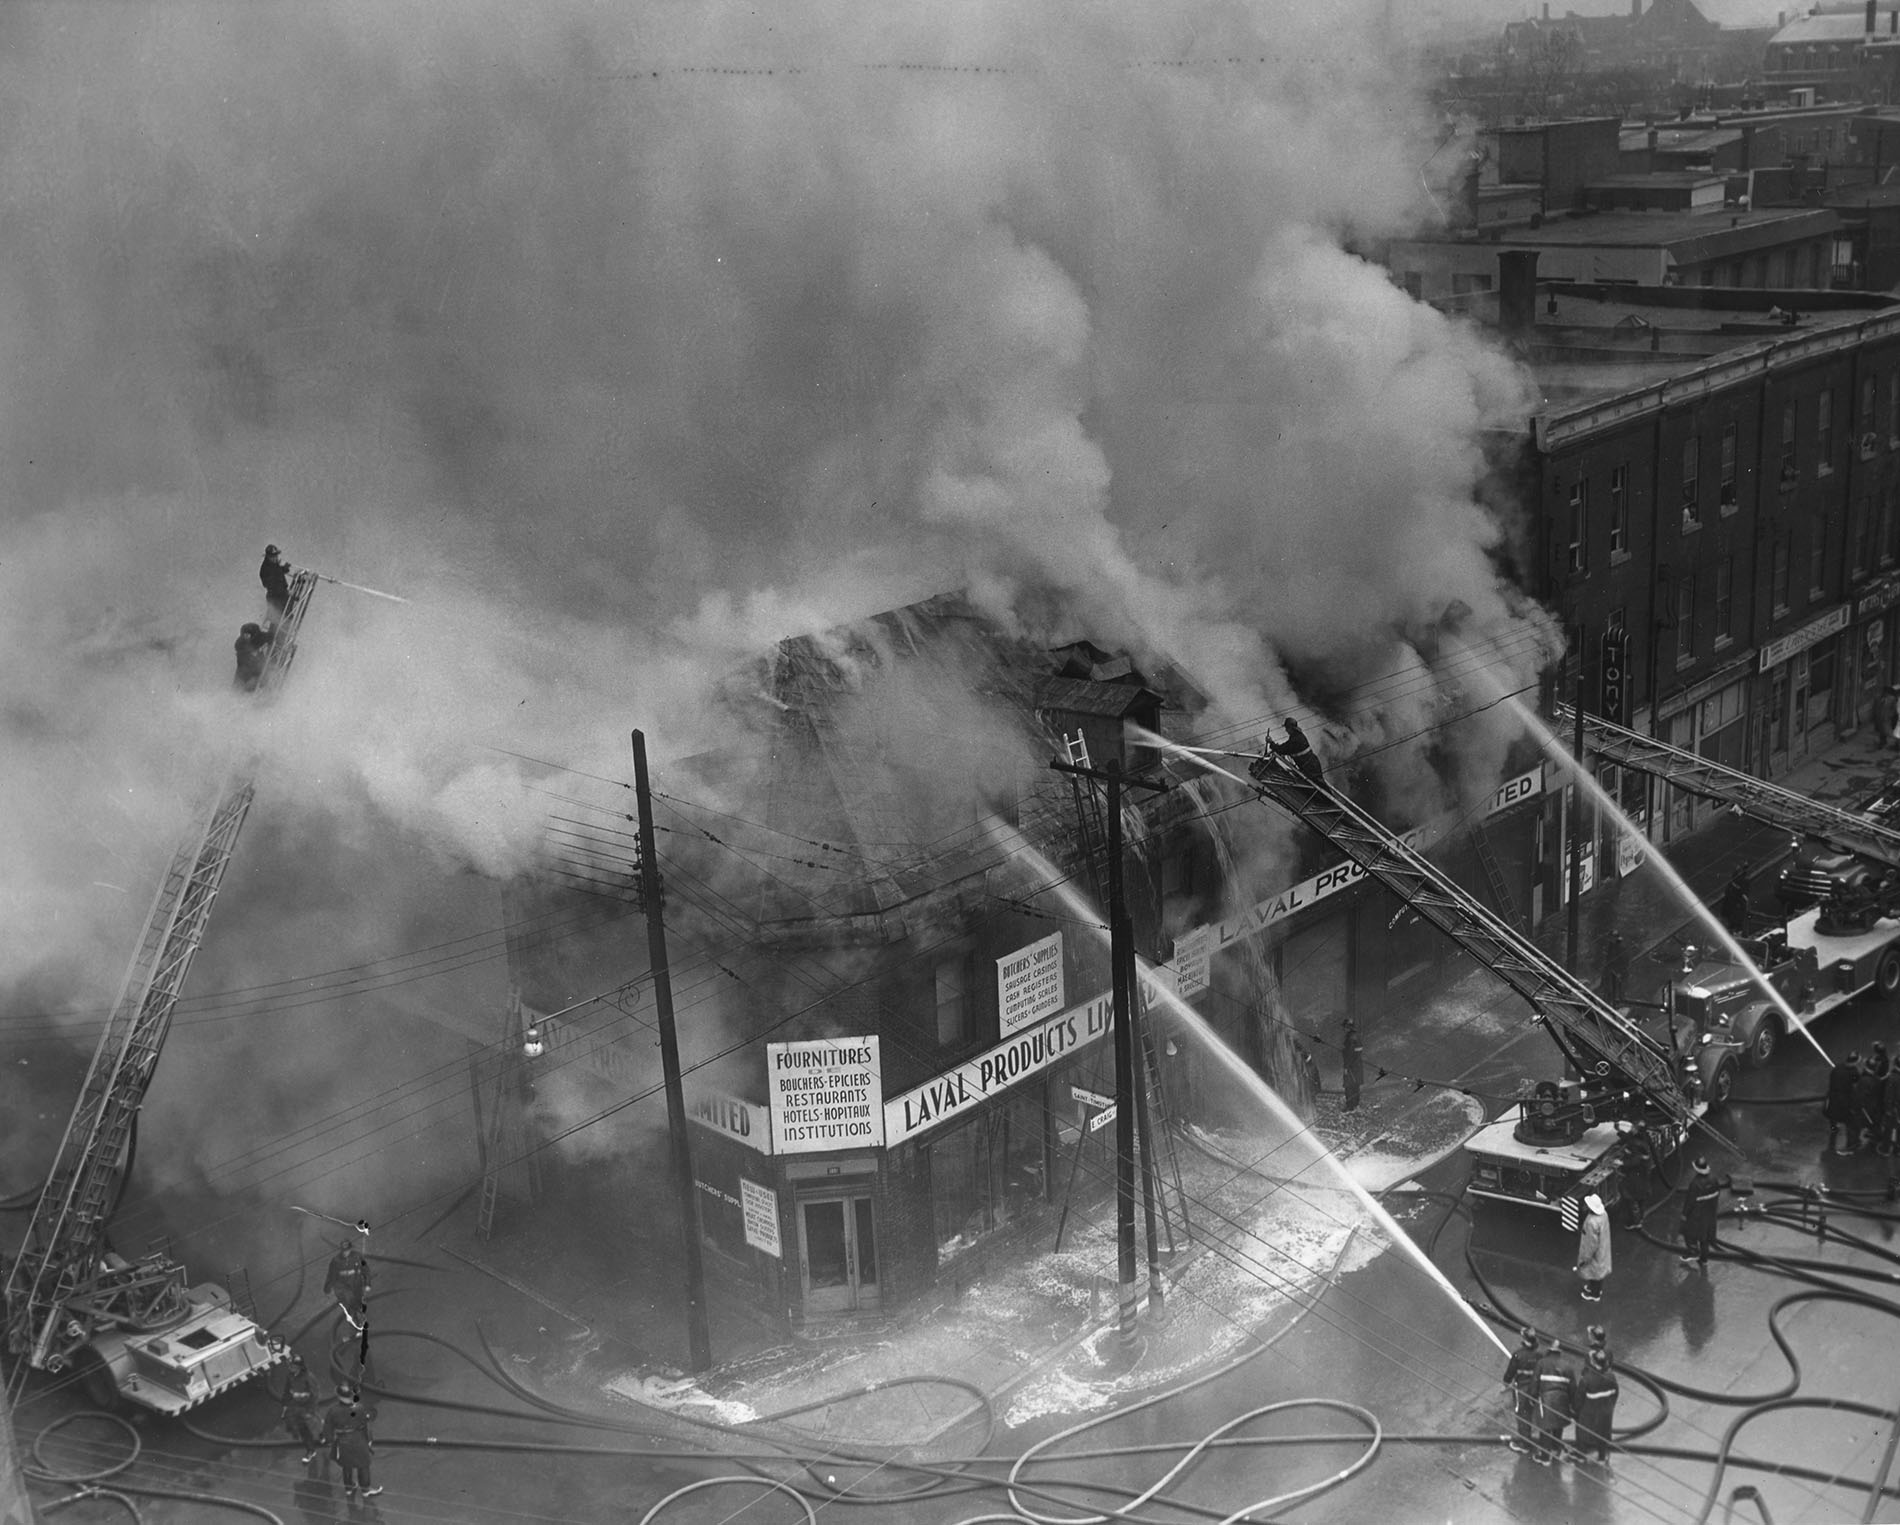 Oct 28 1959 Craig St Timothee 2 alarm